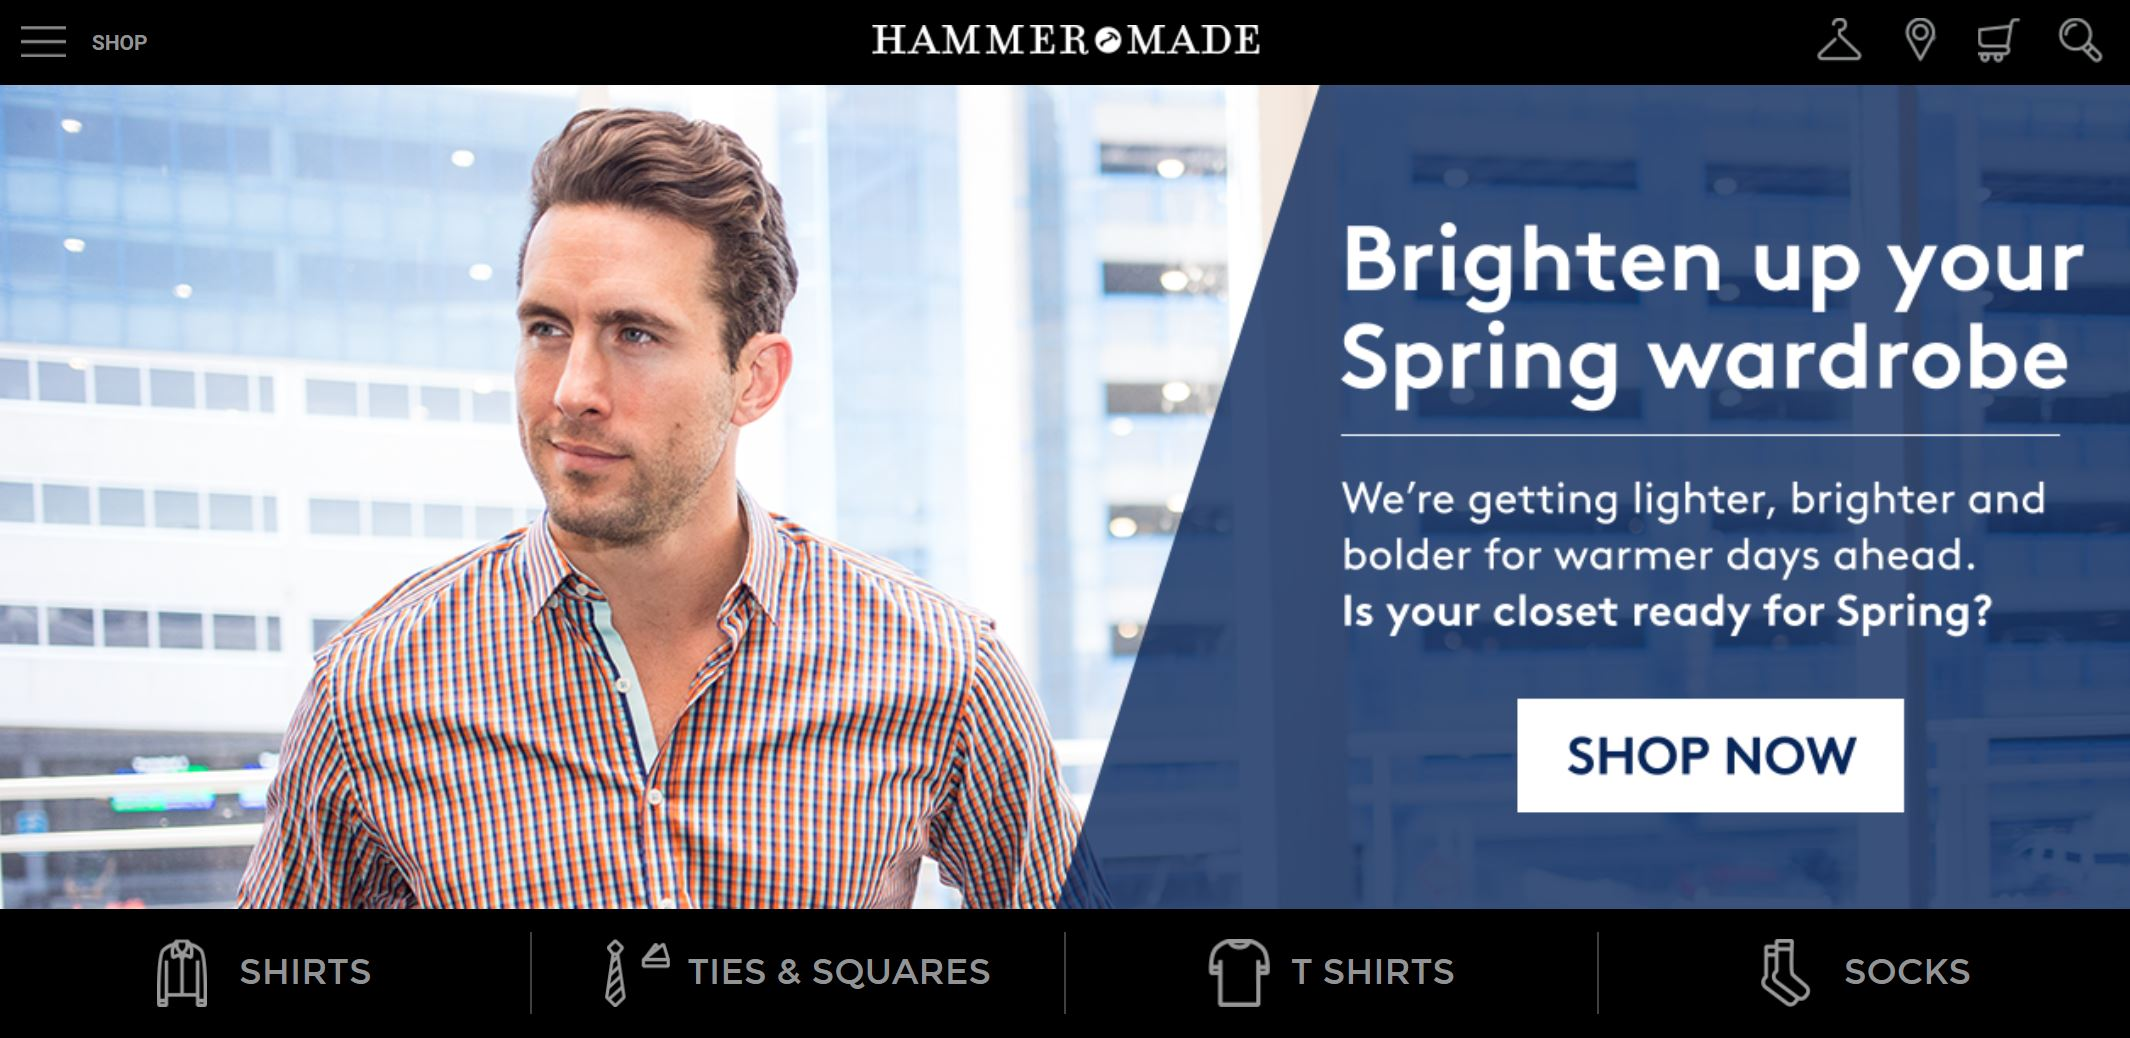 hammermade homepage screenshot